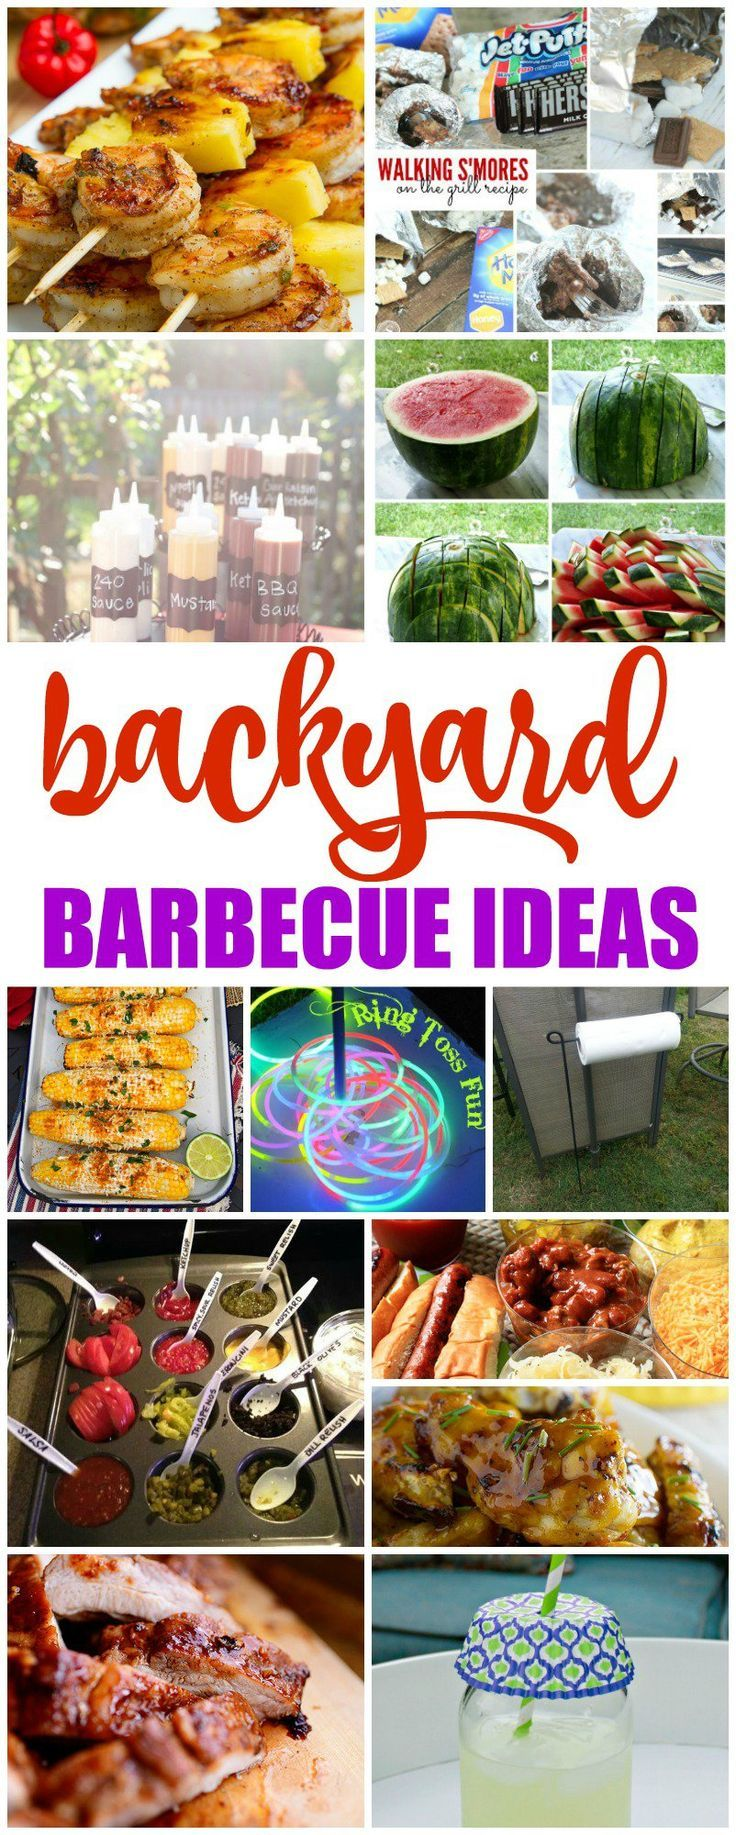 Permalink to 24 beautiful pict of Backyard Barbecue Recipes